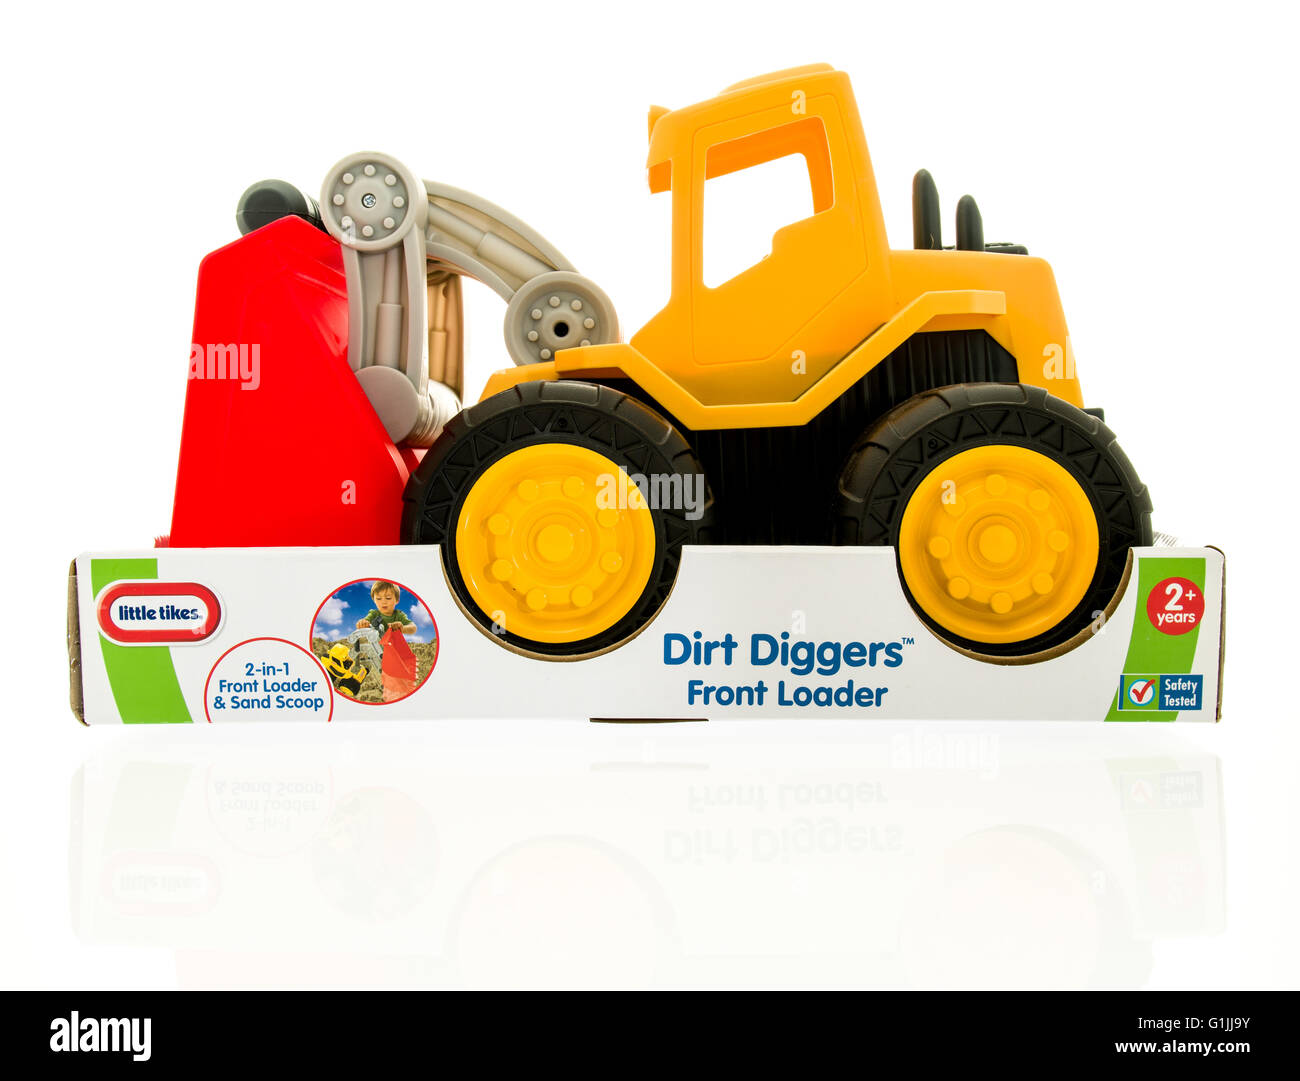 Winneconne, WI - 15 May 2016: Package of a Little Tikes dirt diggers on an isolated background - Stock Image